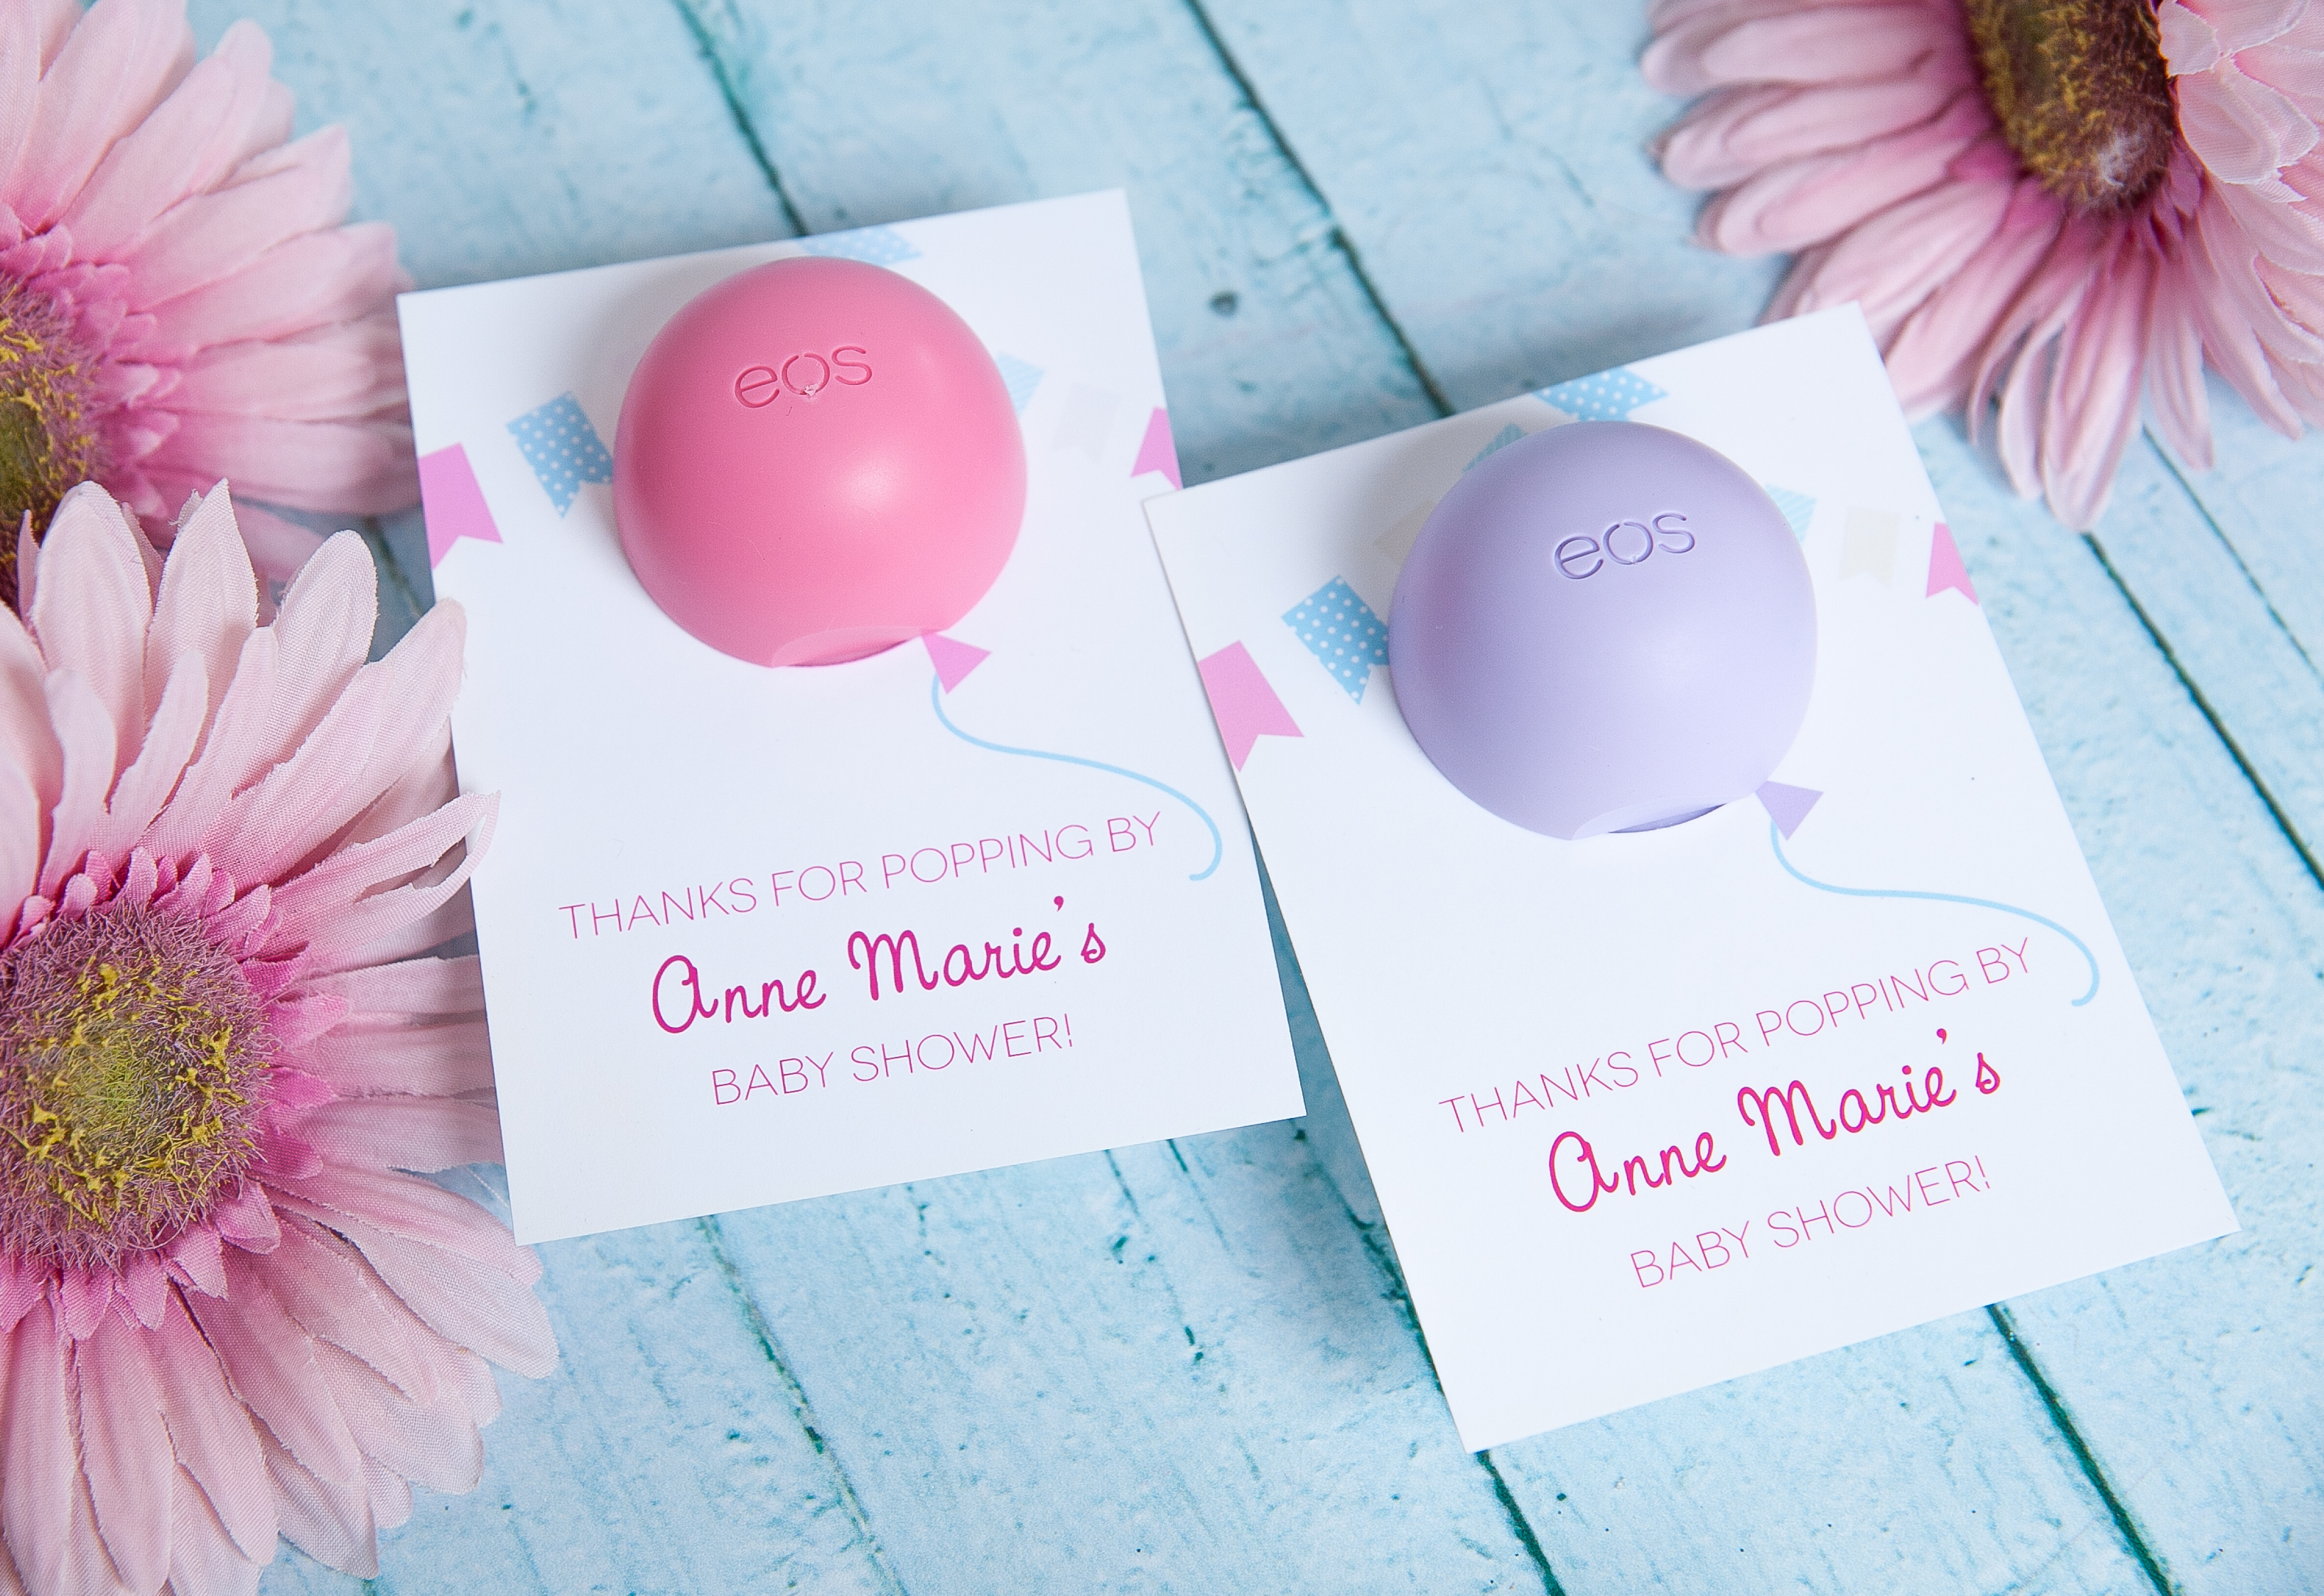 About To Pop Baby Shower Favor - Project Nursery - Free Printable Eos Baby Shower Template